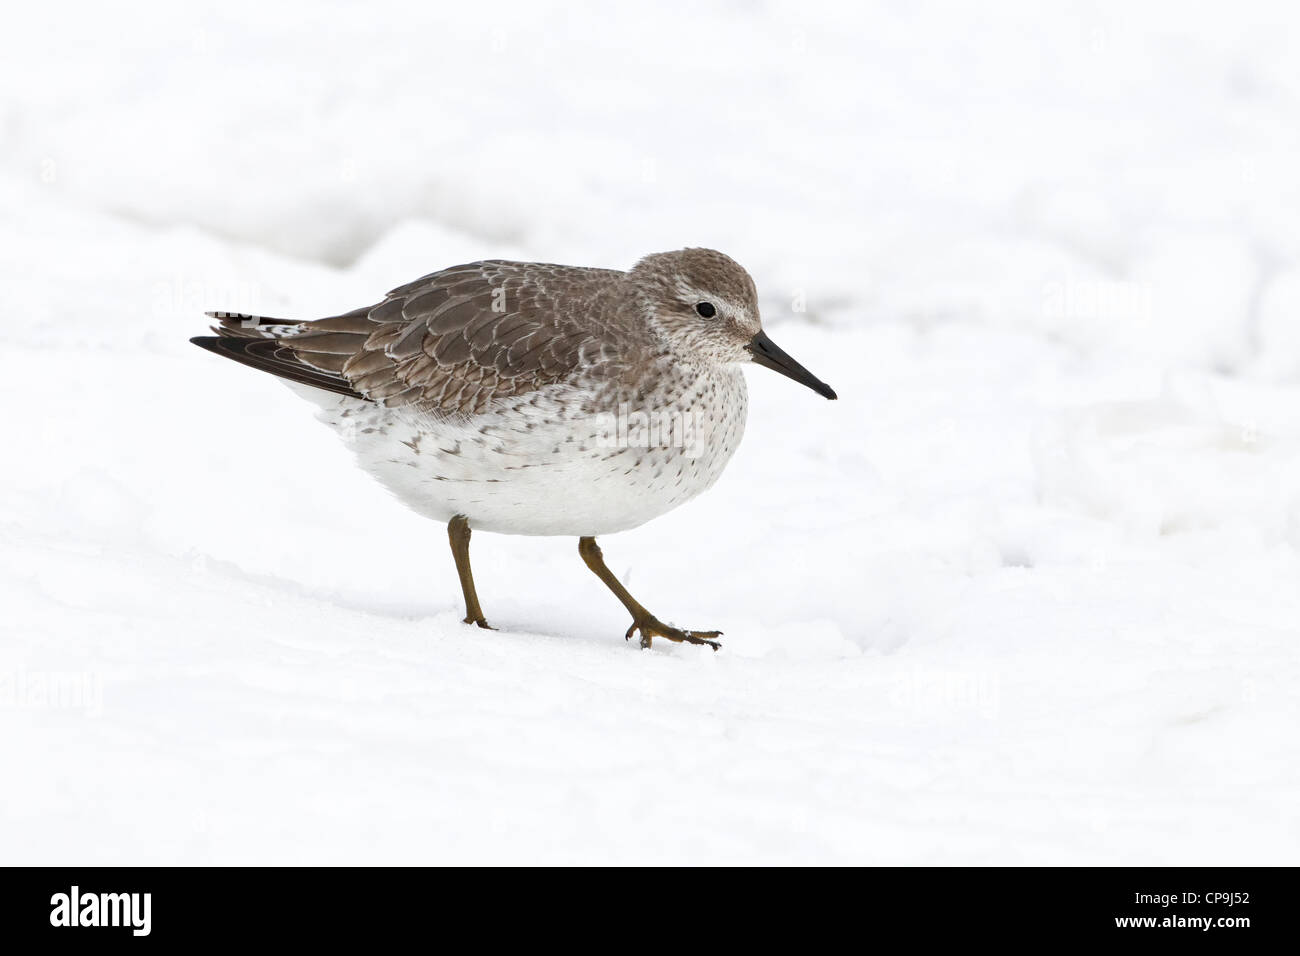 winter plumage Knot walking in snow - Stock Image